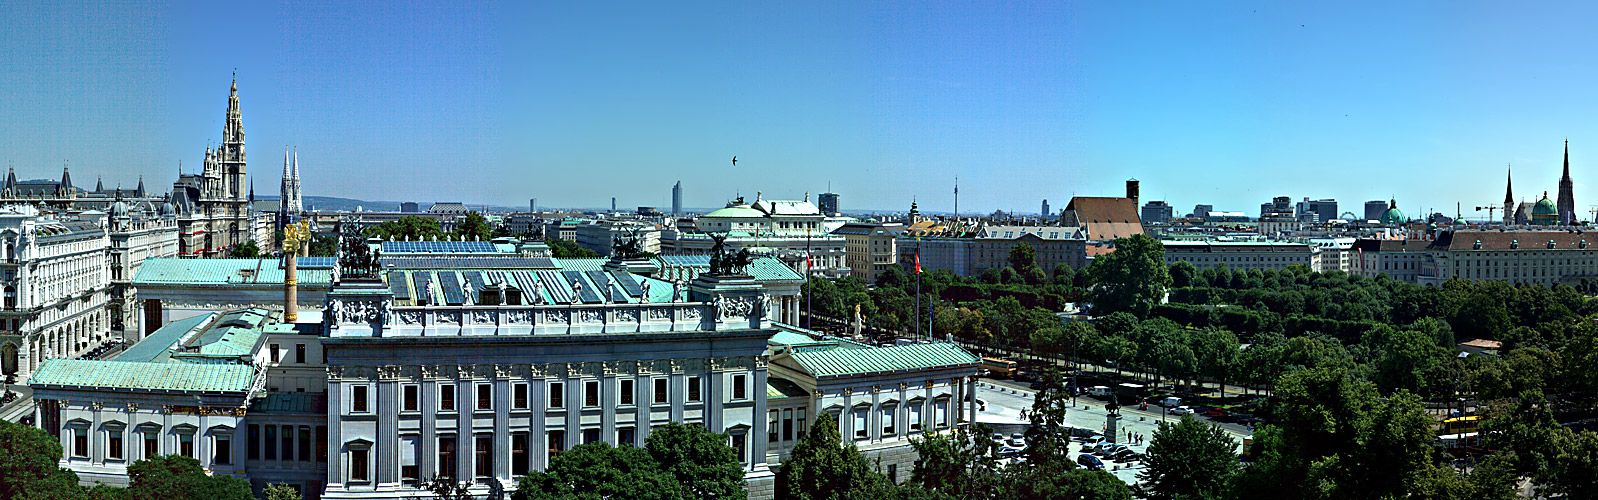 Panorama vom Cafe Justizpalast